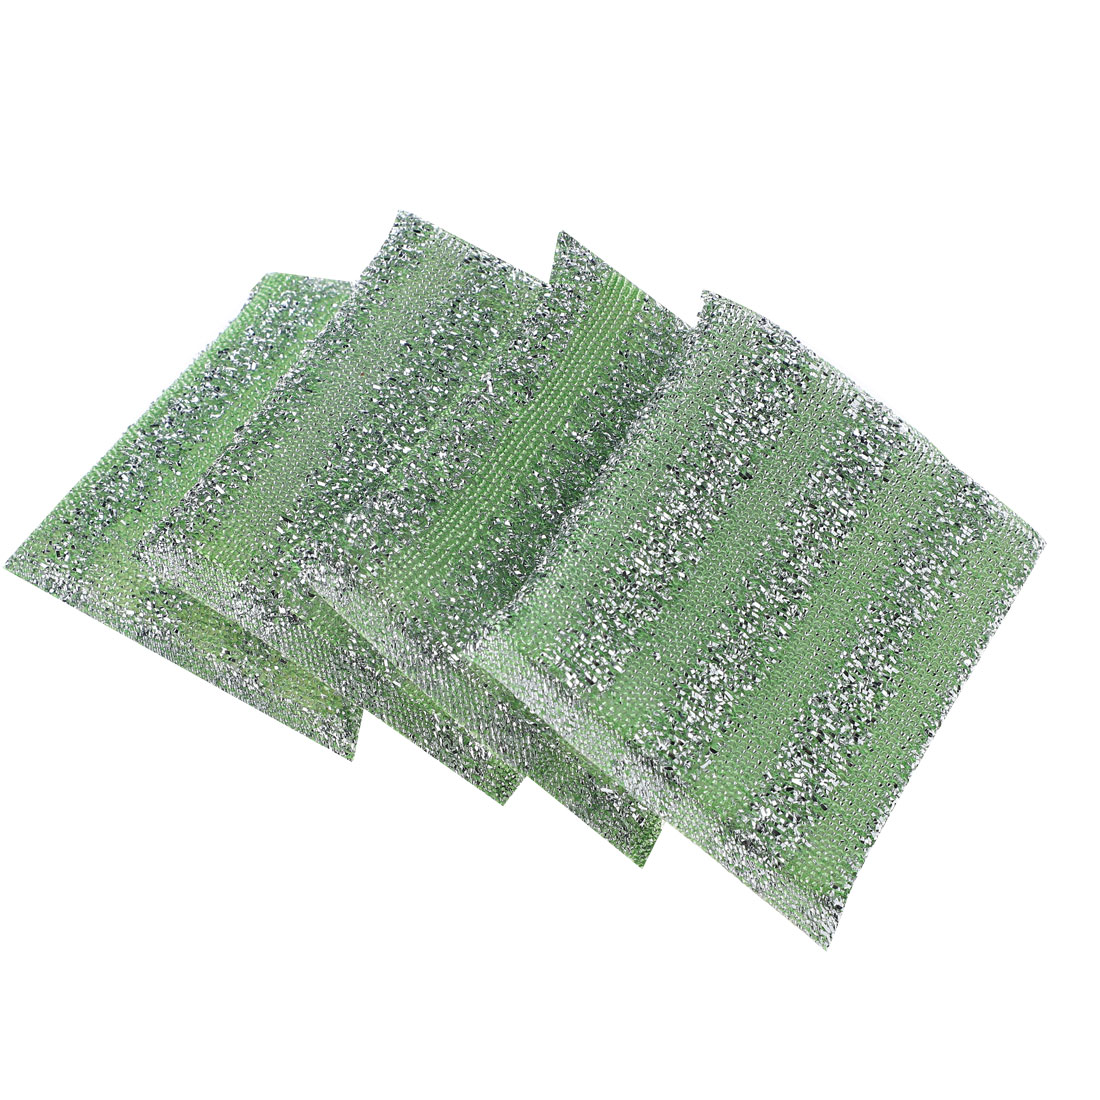 Kitchen Dish Pot Steel Wire Sponge Cleaning Scrubber Scouring Pads Green 4 Pcs